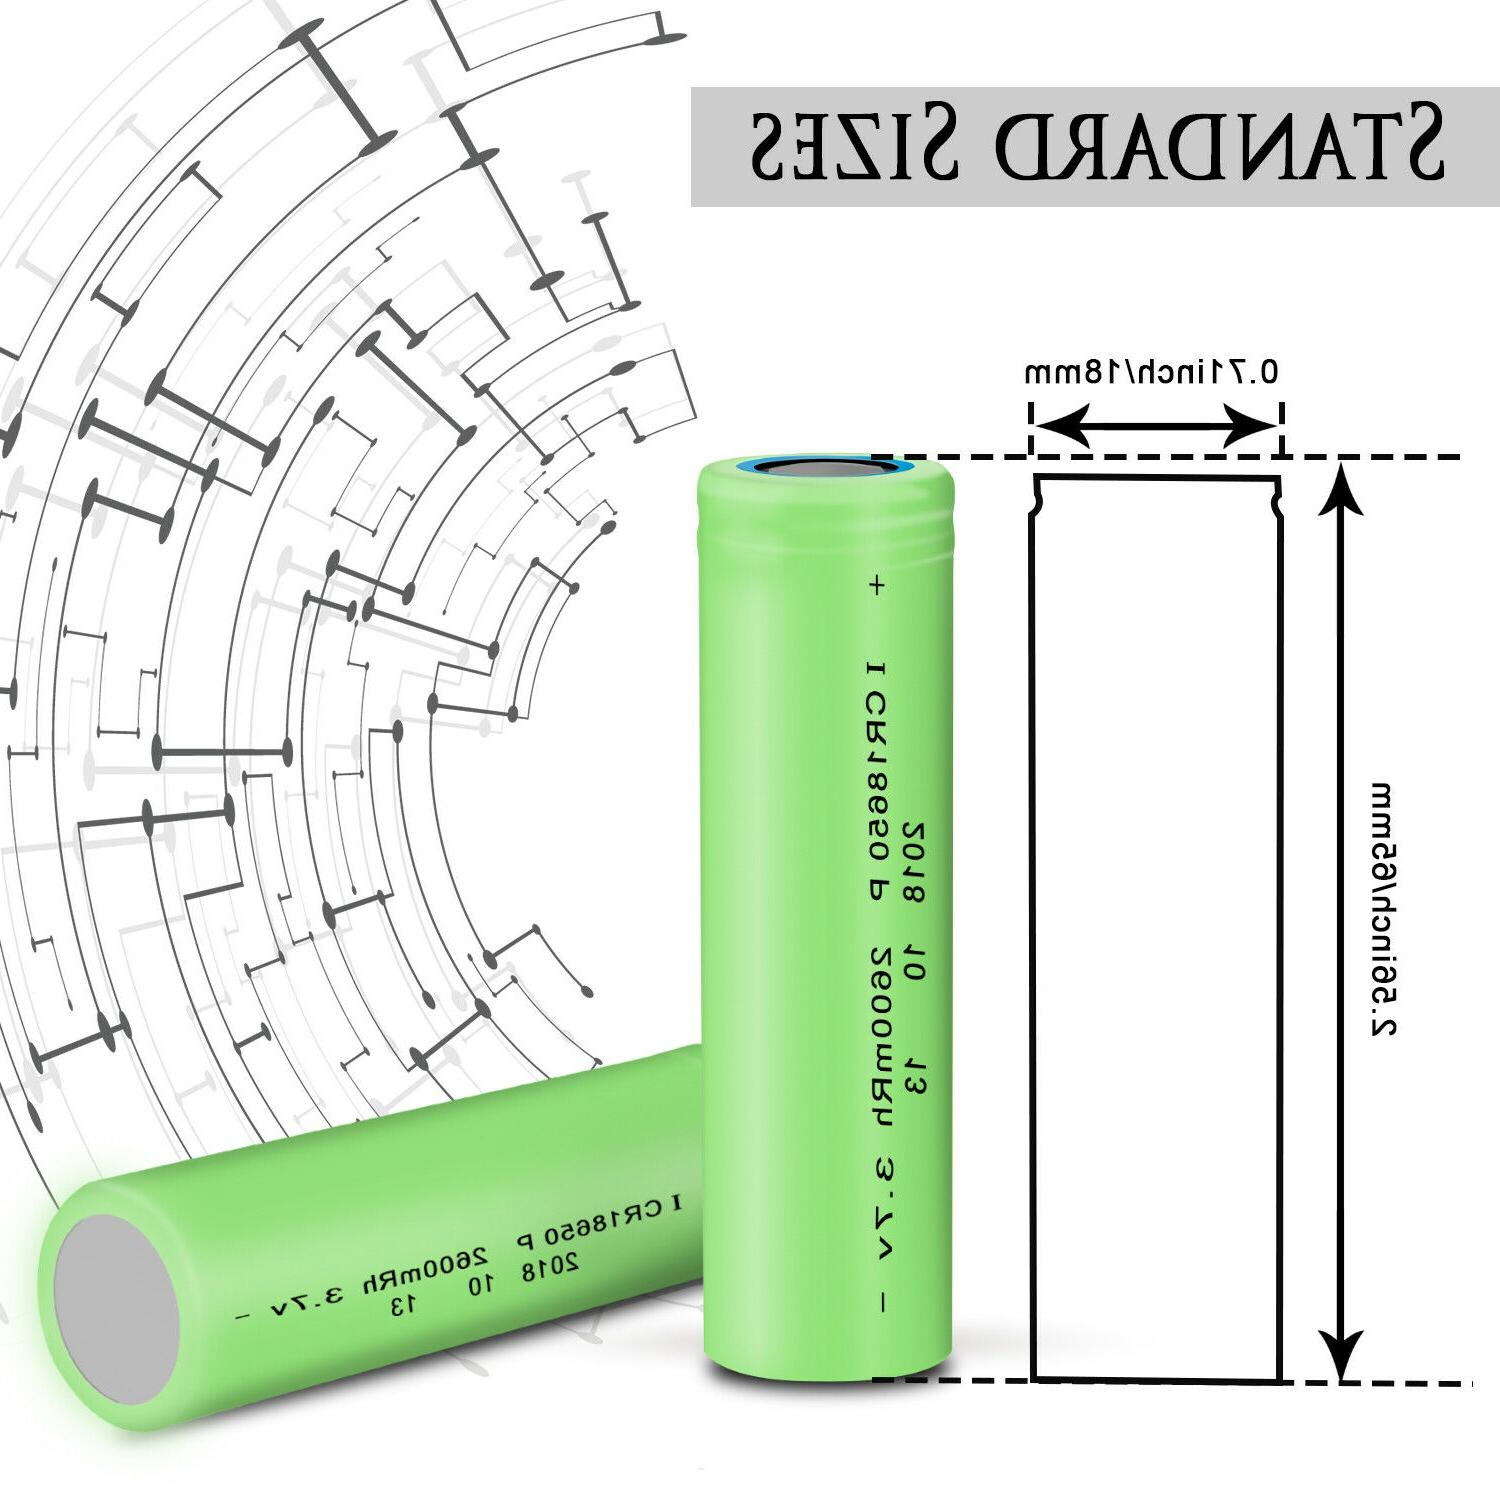 Smart Intelligent USB Battery Rechargeable With 3.7V